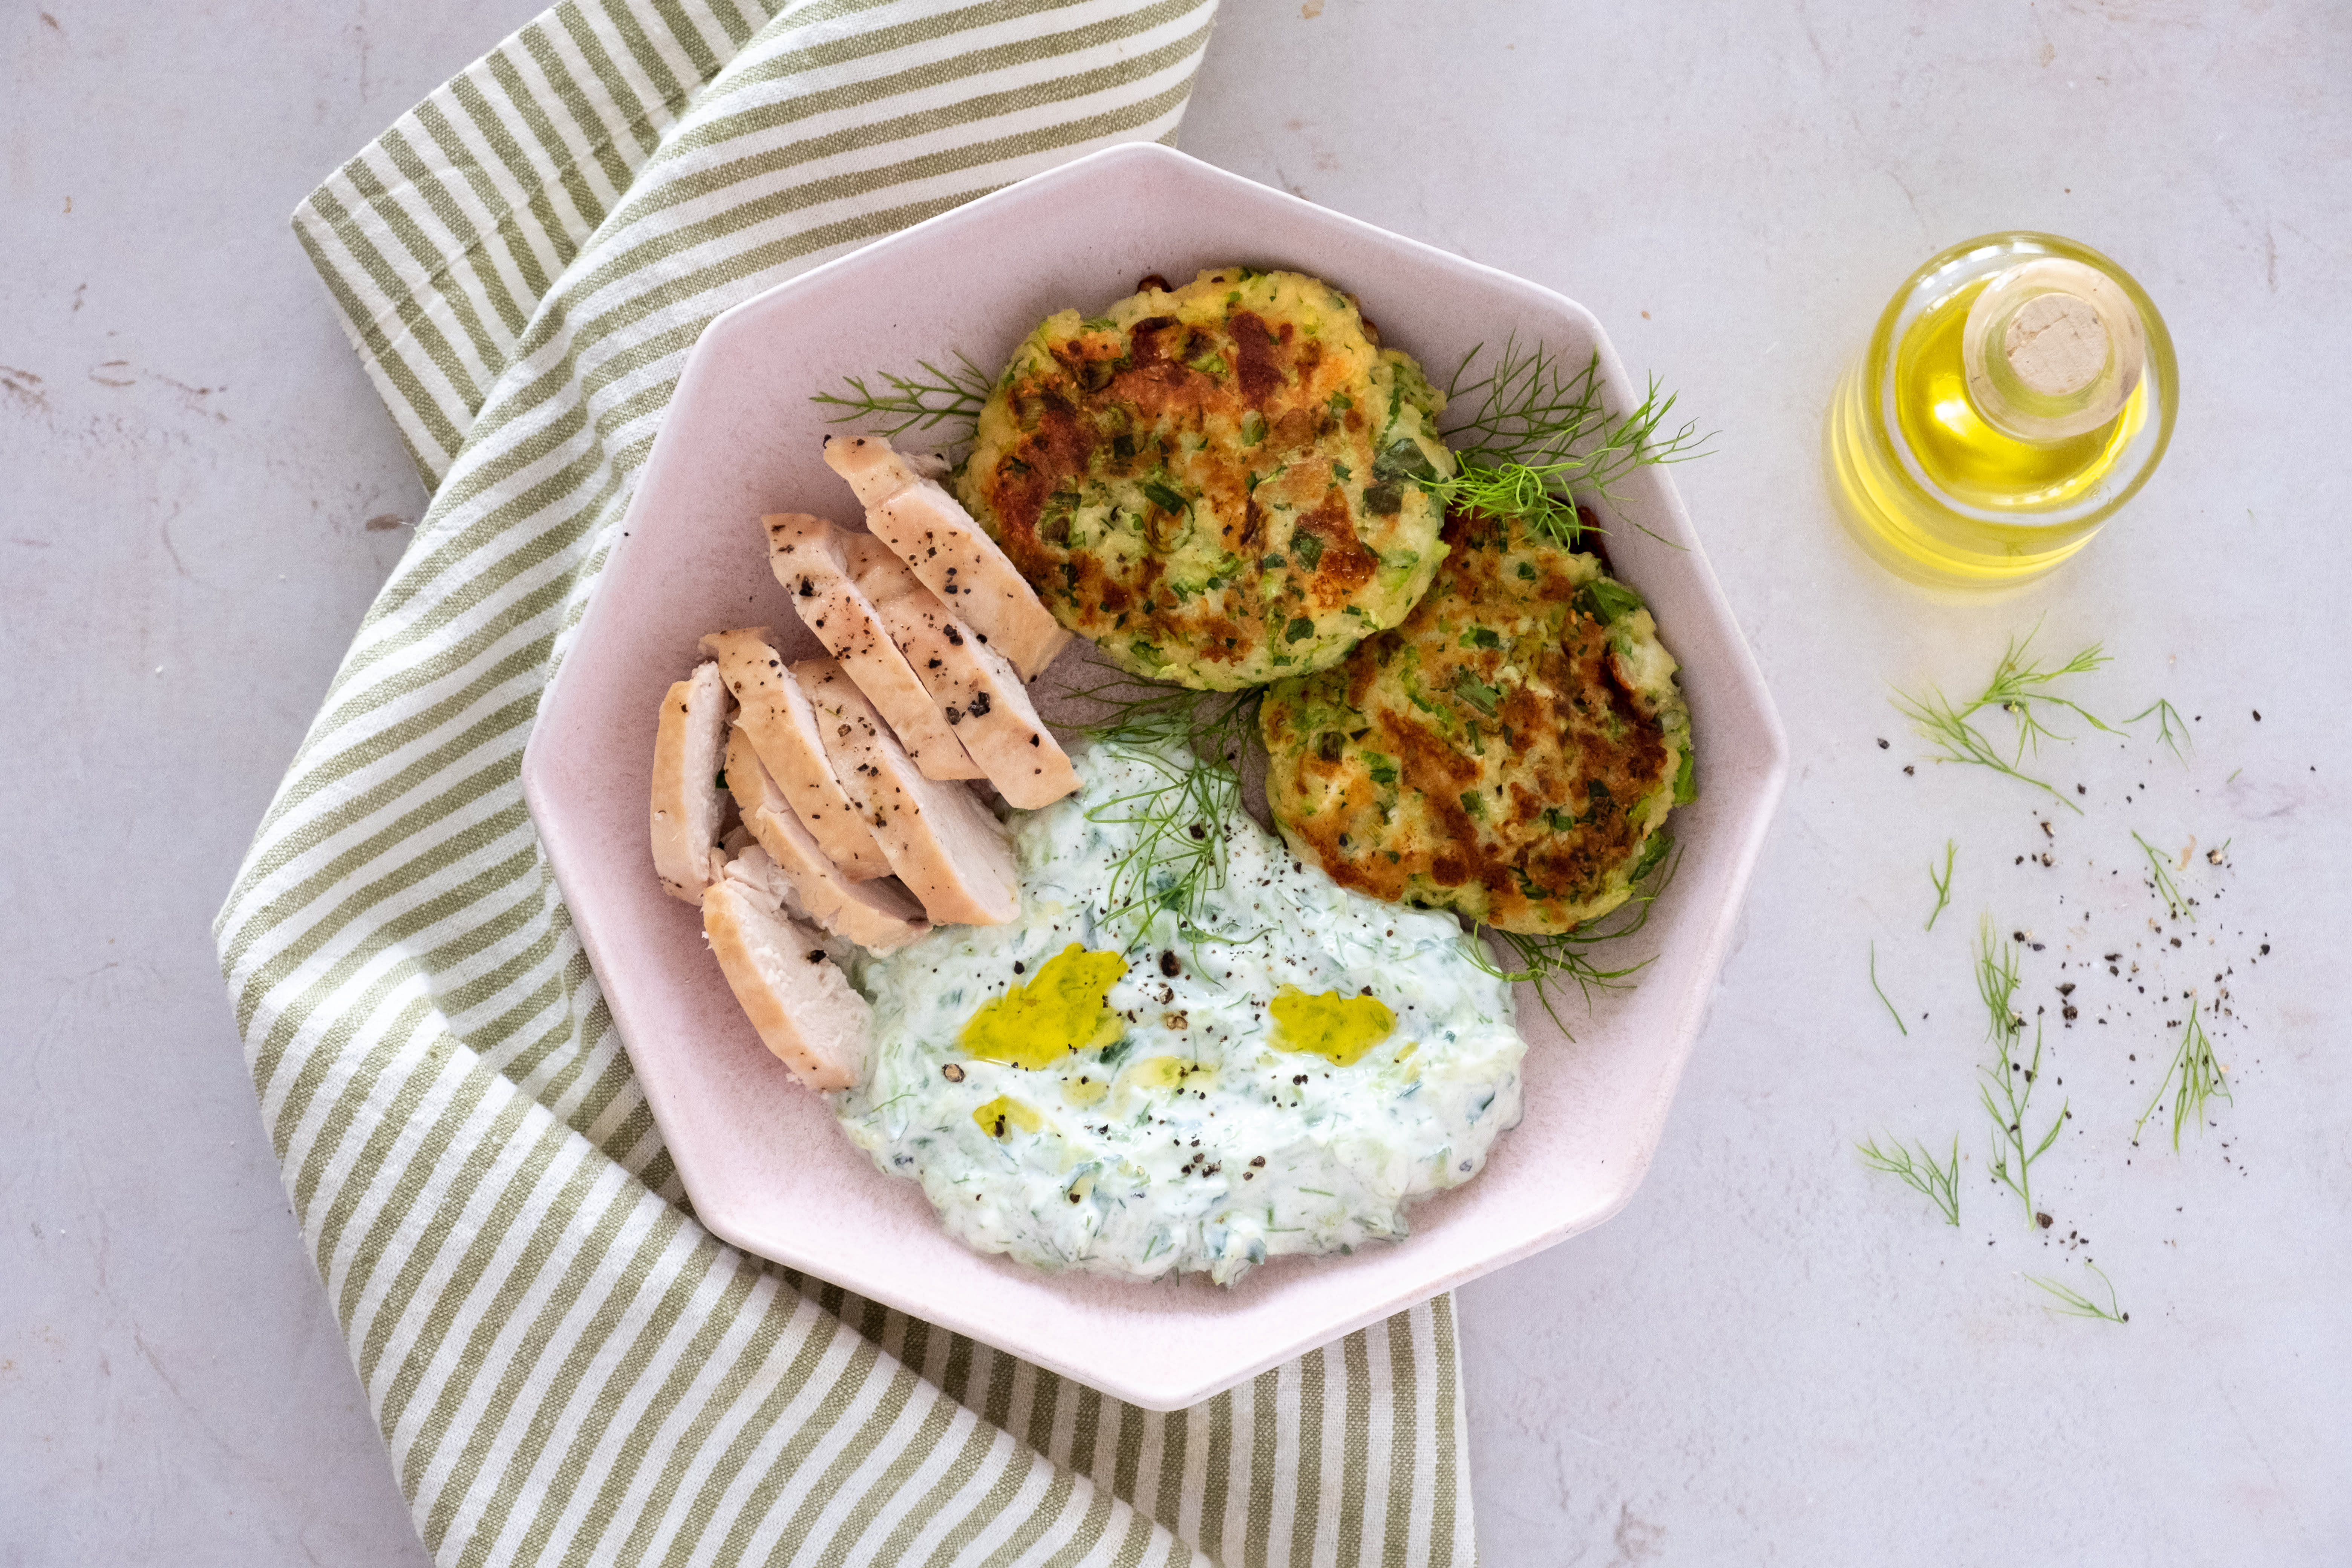 Mediterranean-style Grilled Chicken with Zucchini Fritters and Tzatziki